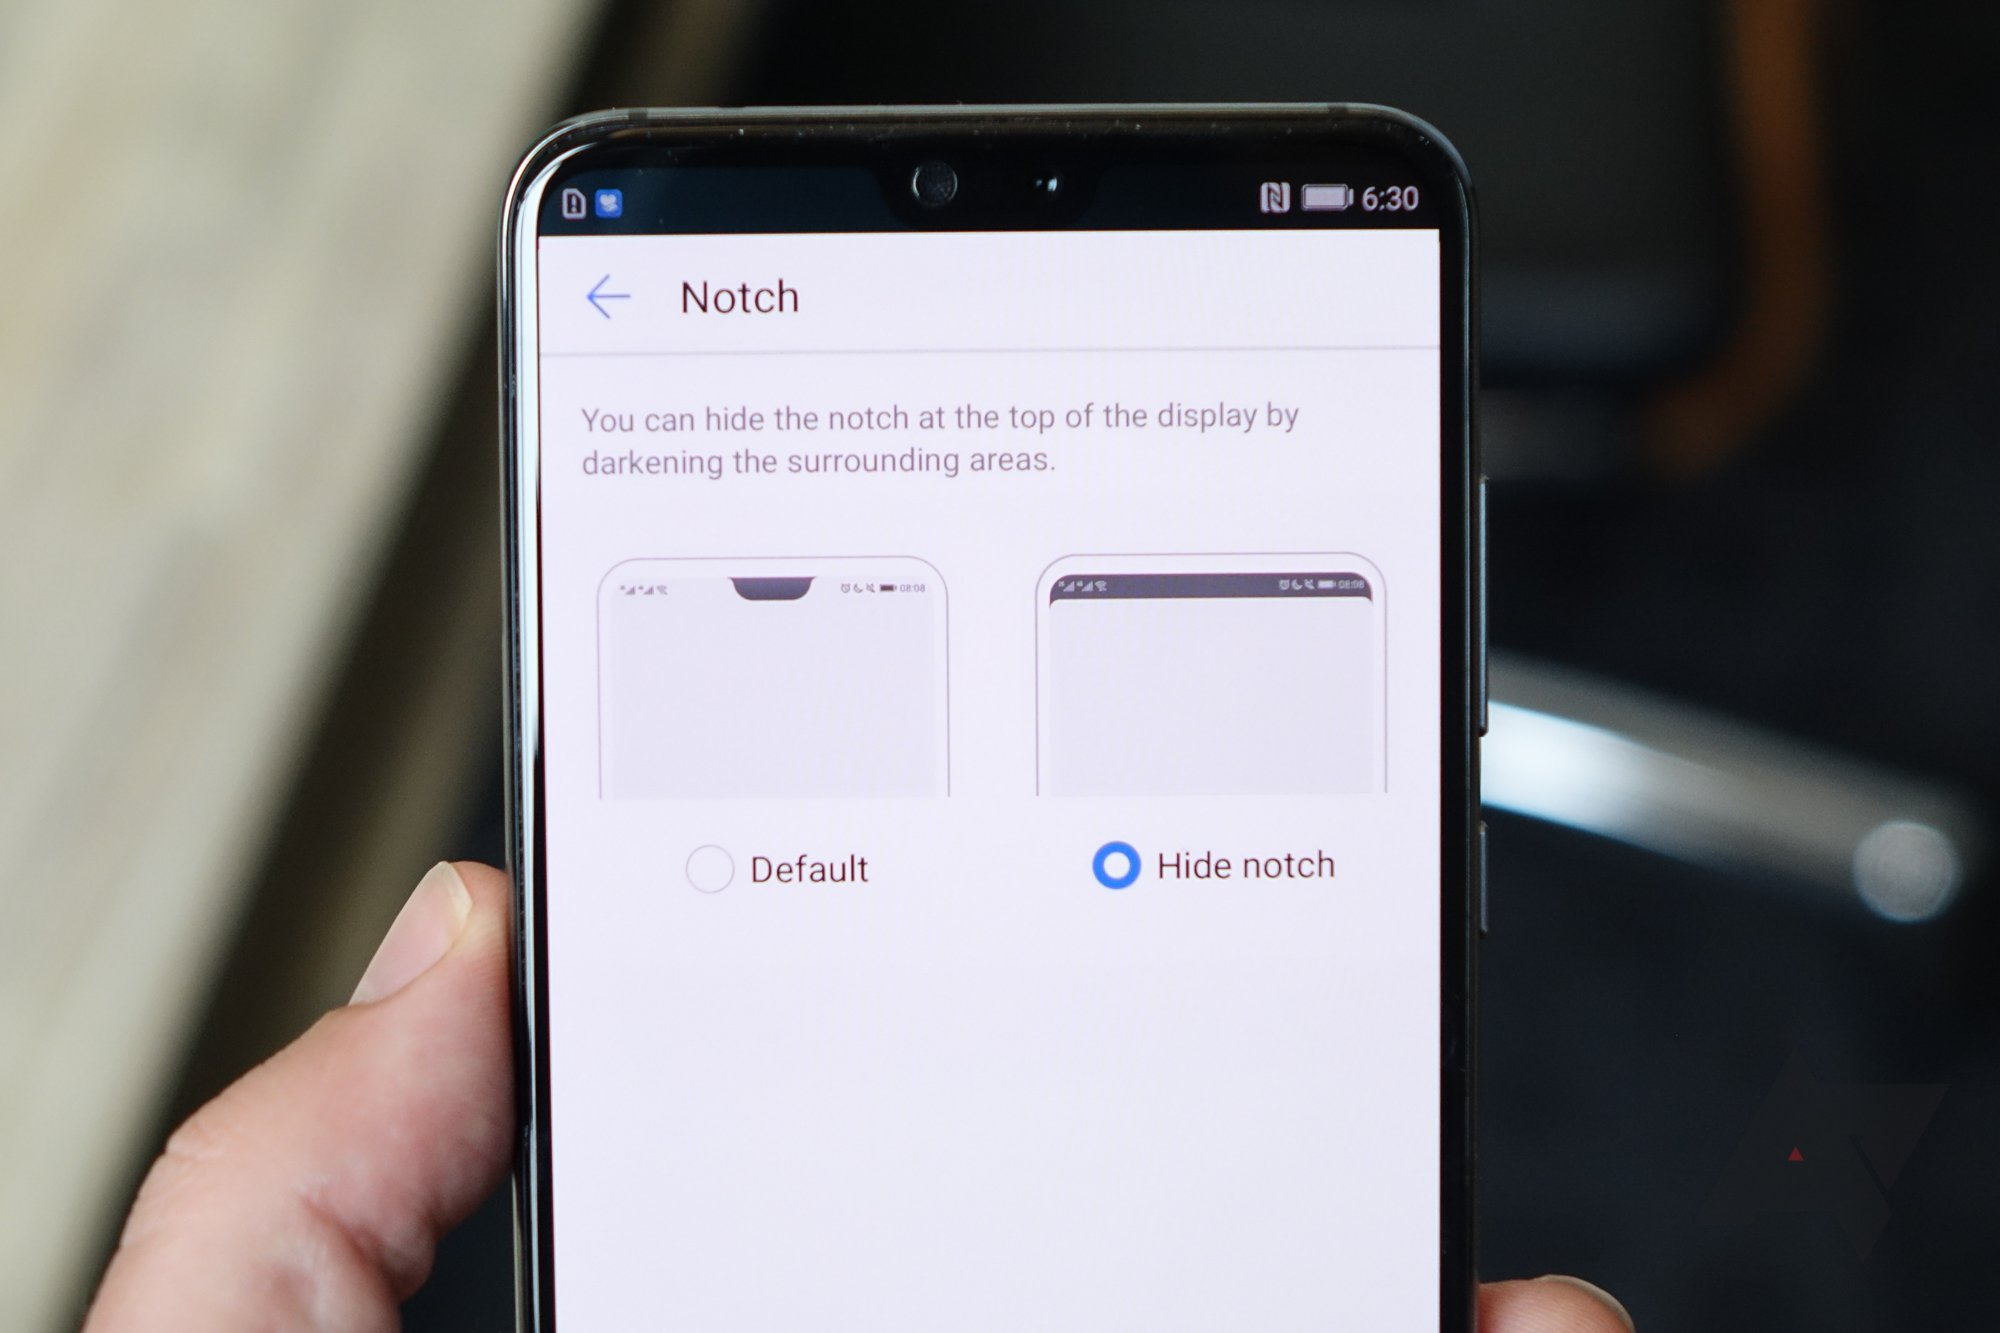 Hiding the Notch on Huawei P20 Pro